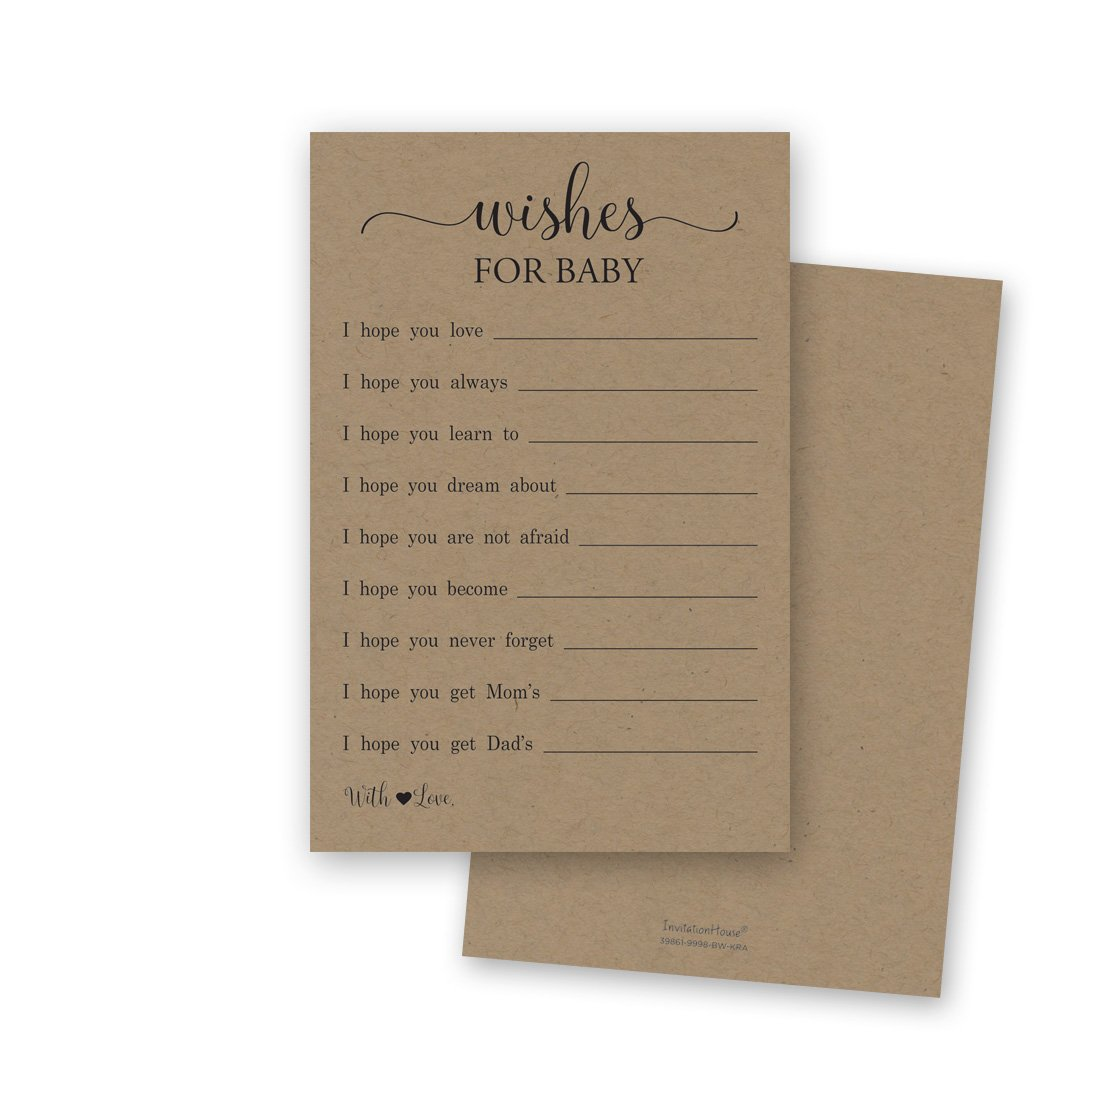 48 Rustic Kraft Wishes for Baby Cards - Well Wishes for Boy or Girl - Baby Wishes Cards